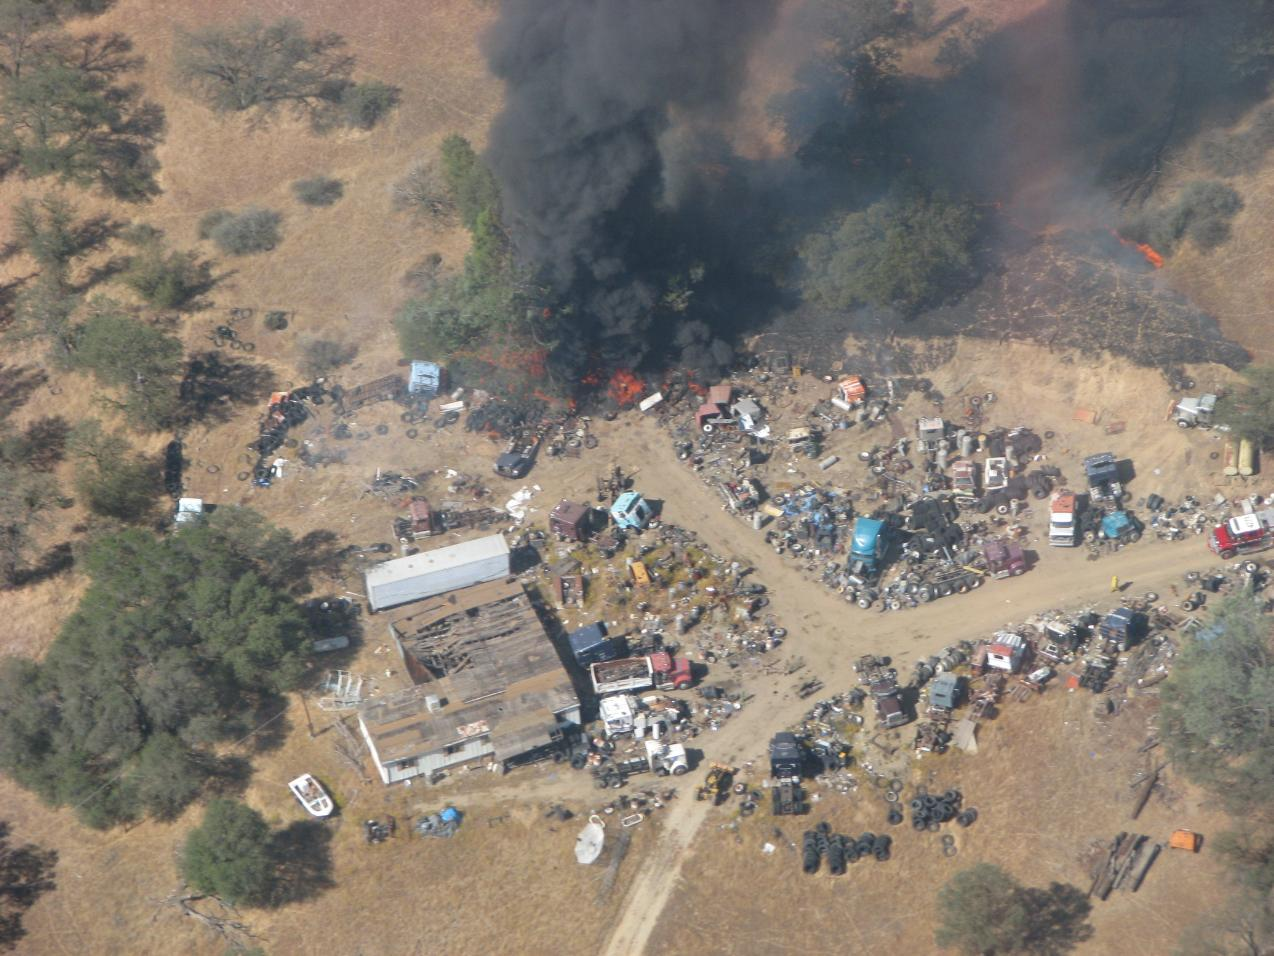 Tires burning at Gulch Fire - photo Cal Fire